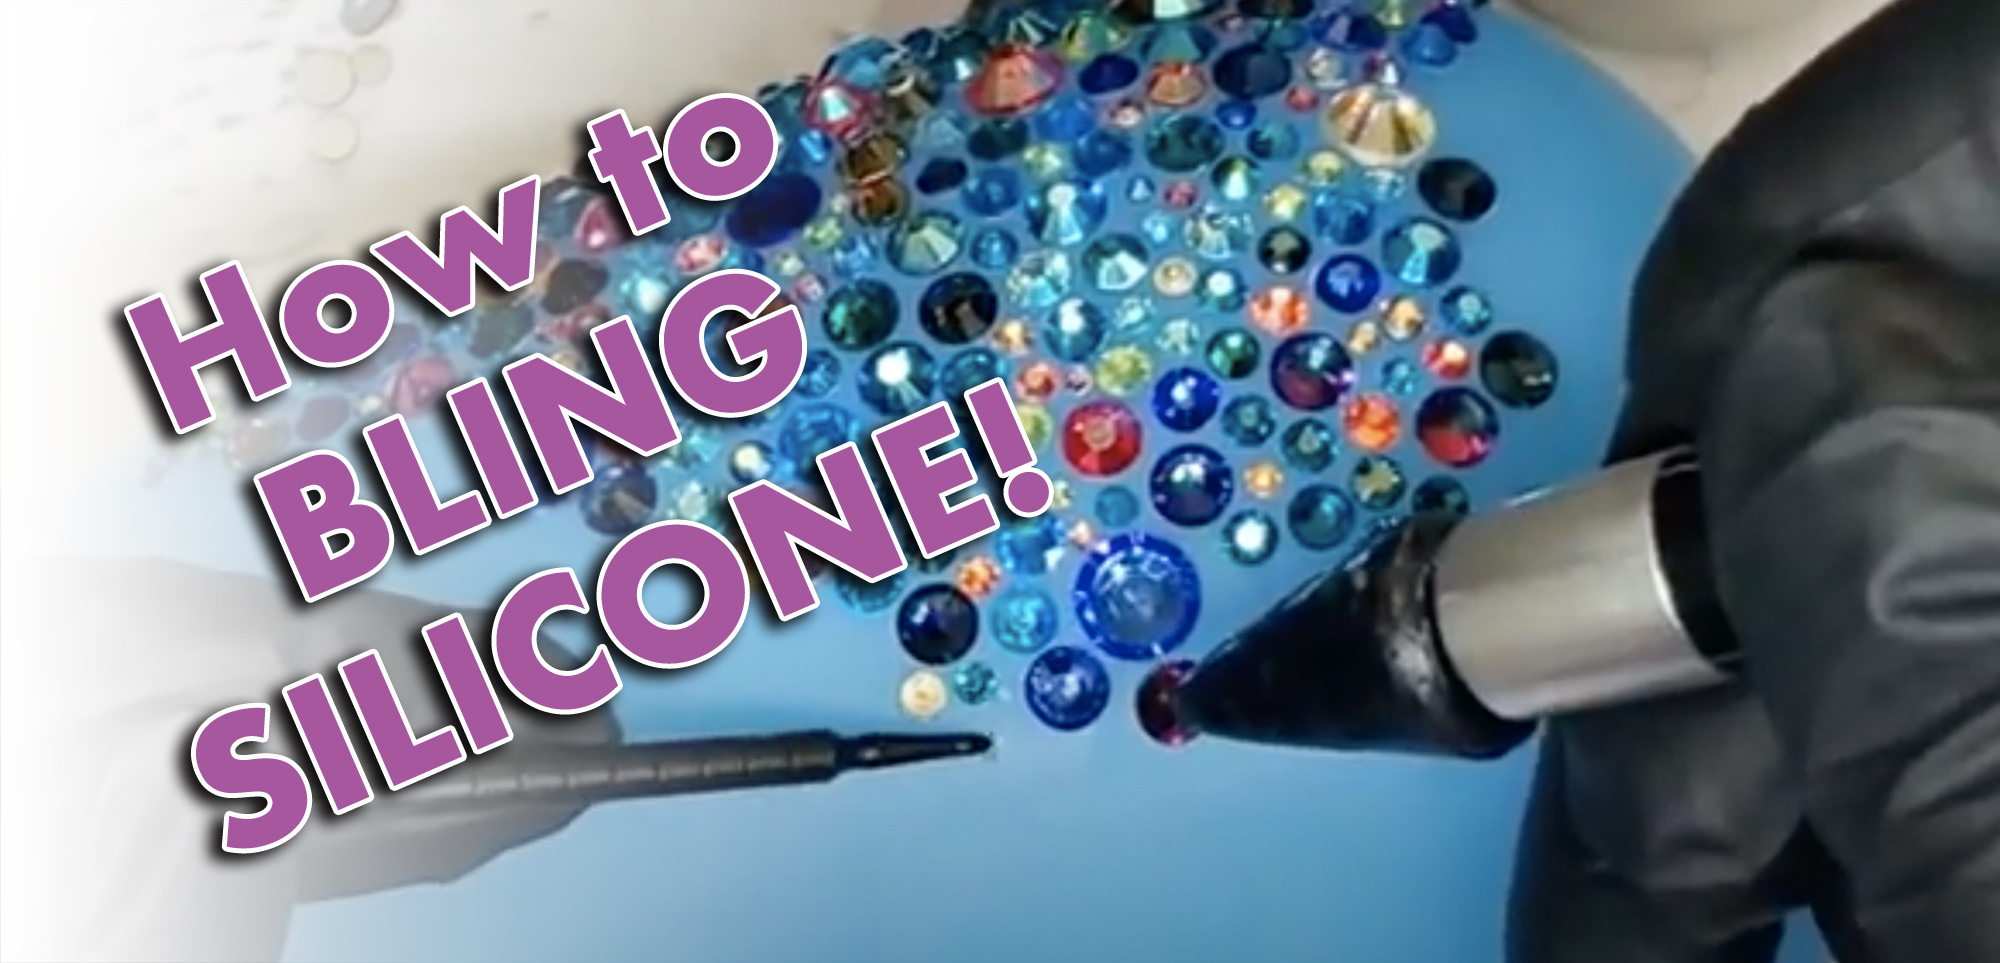 How to Bling Silicone